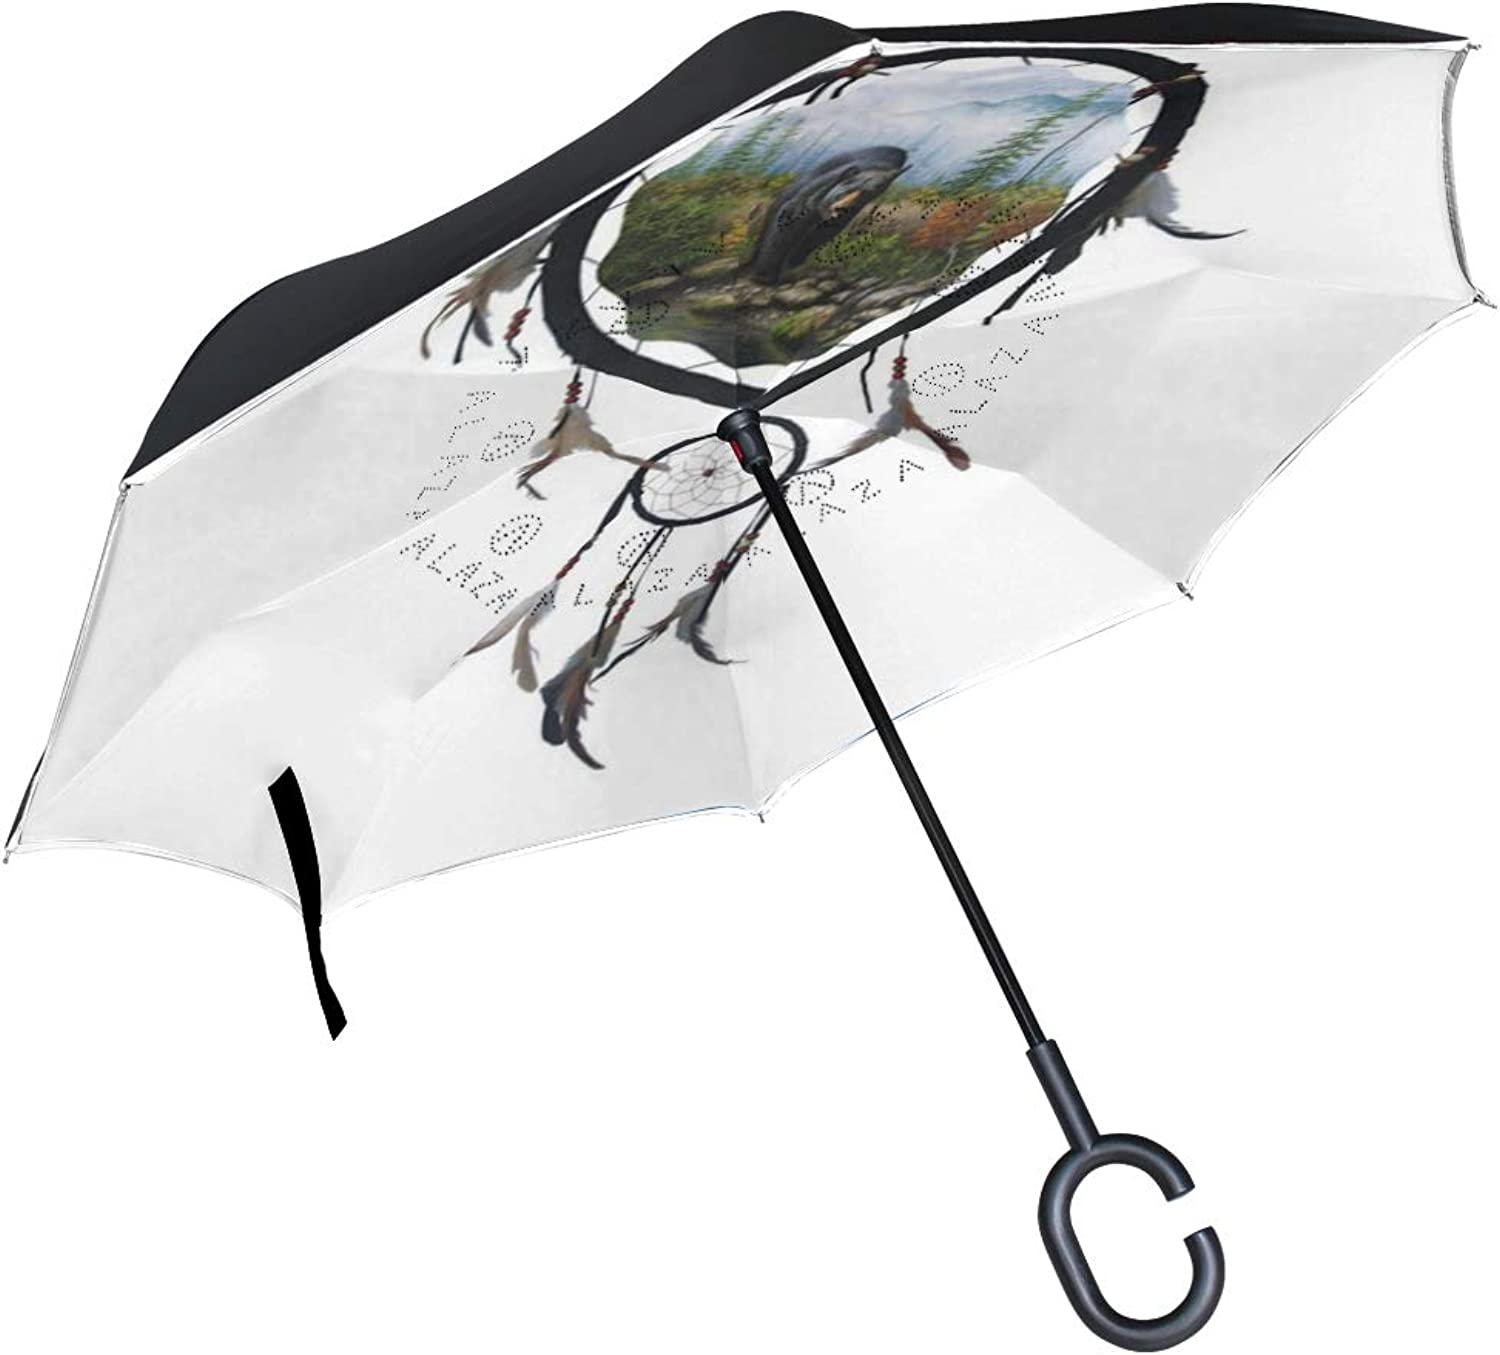 Ingreened Umbrella Double Layer Reverse Umbrella Waterproof Windproof UV Predection Straight Umbrella with CShaped Handle Dream Catcher Bear Digital Printing for Car Rain Outdoor Use